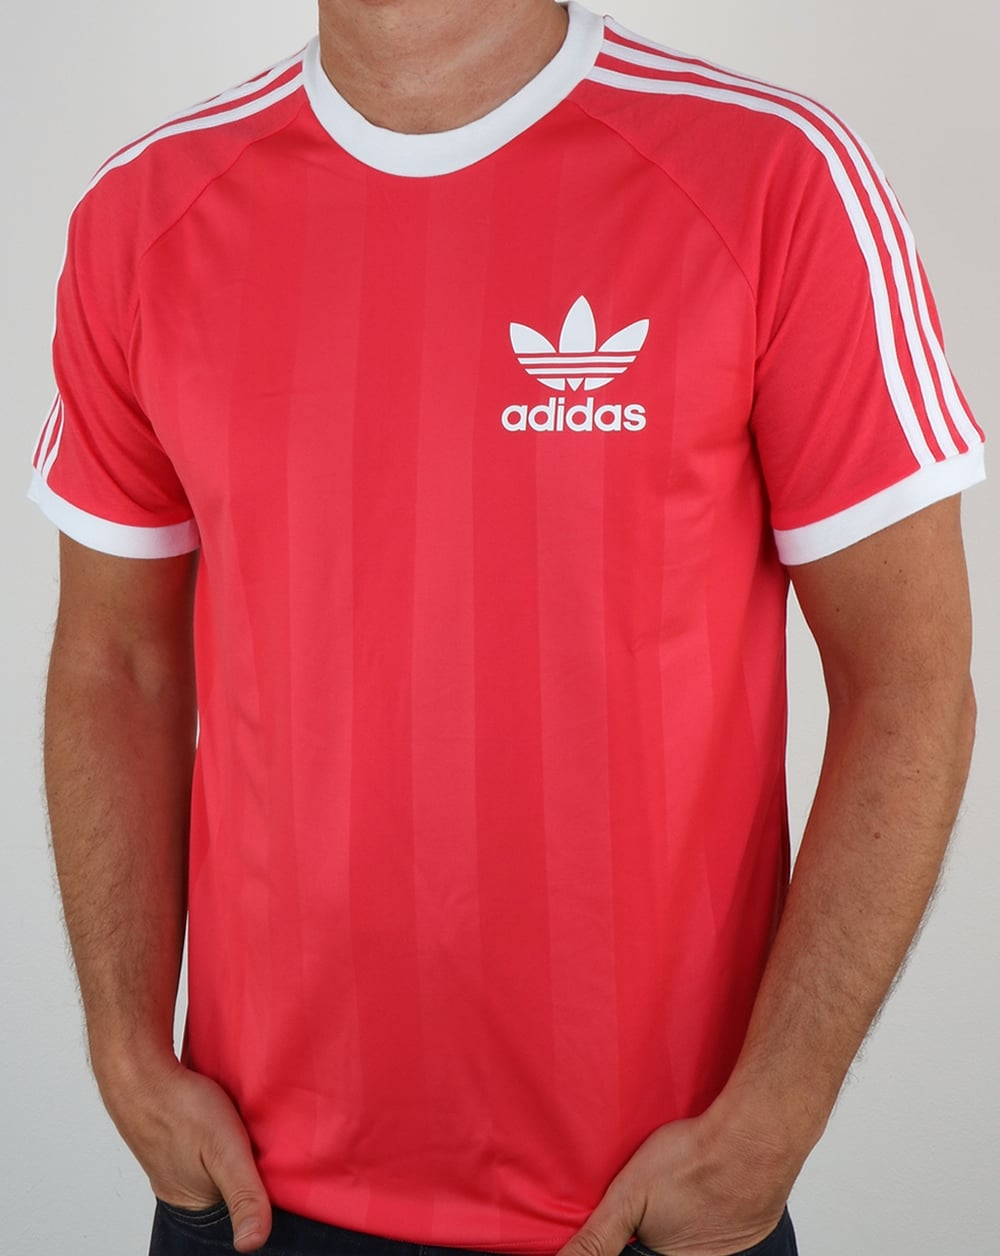 Buy Here Pay Here Ma >> Adidas Originals Old Skool T Shirt Core Pink,football,California